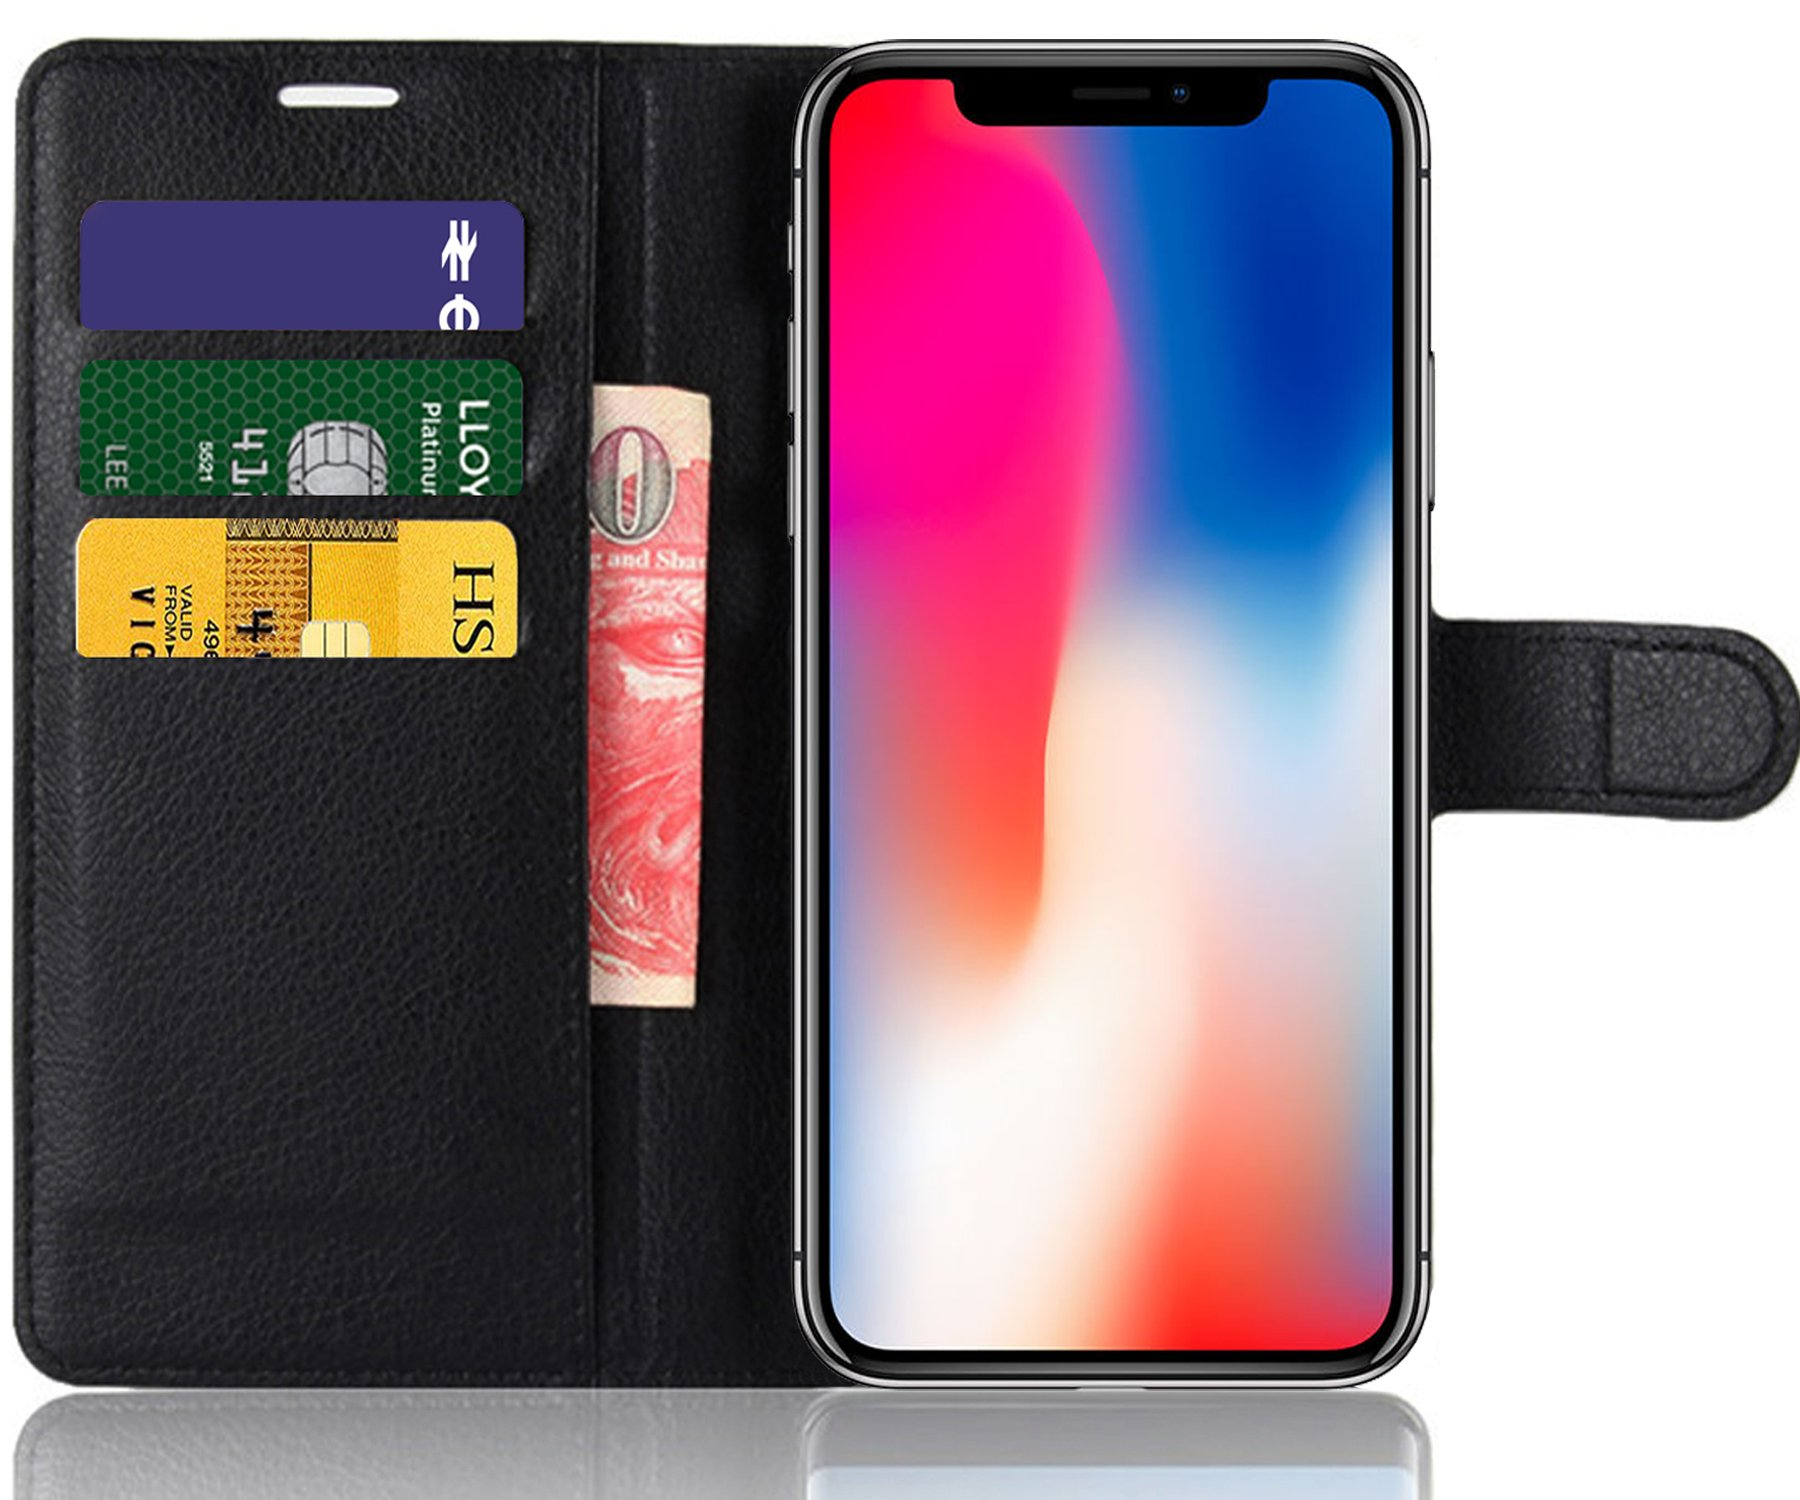 SAMAR – Apple iPhone X Premium Quality Black Wallet Case with slots for Credit Cards and Cash [Extreme Protection] slim fit Cover for iPhone 10 with Free Lifetime Replacement